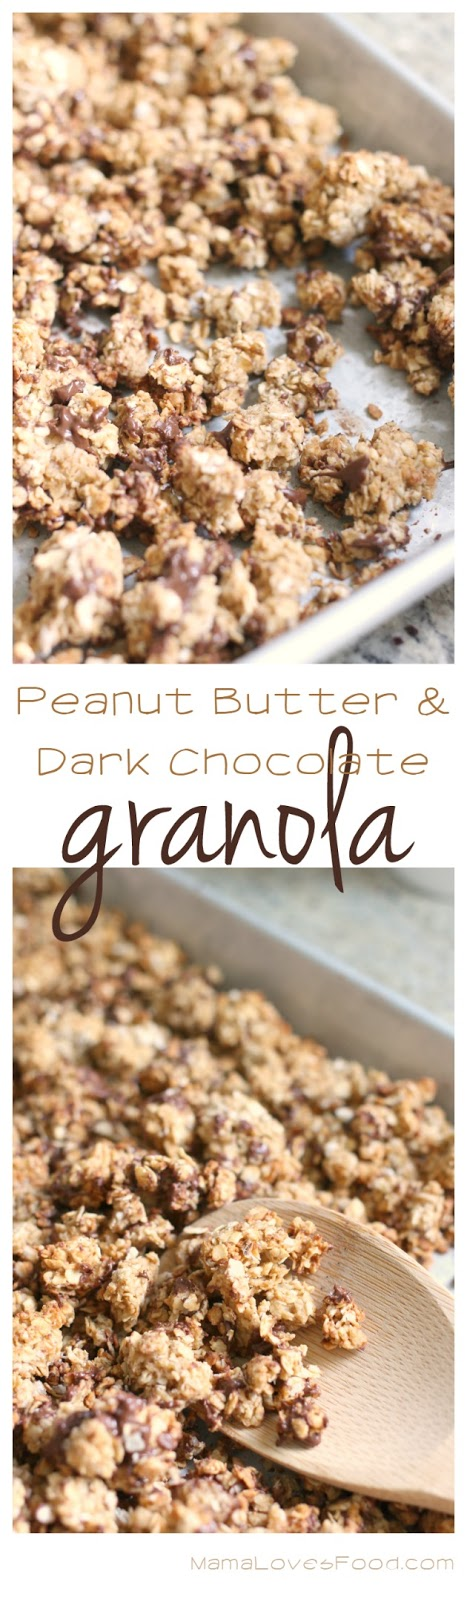 Peanut Butter Dark Chocolate Granola Recipe